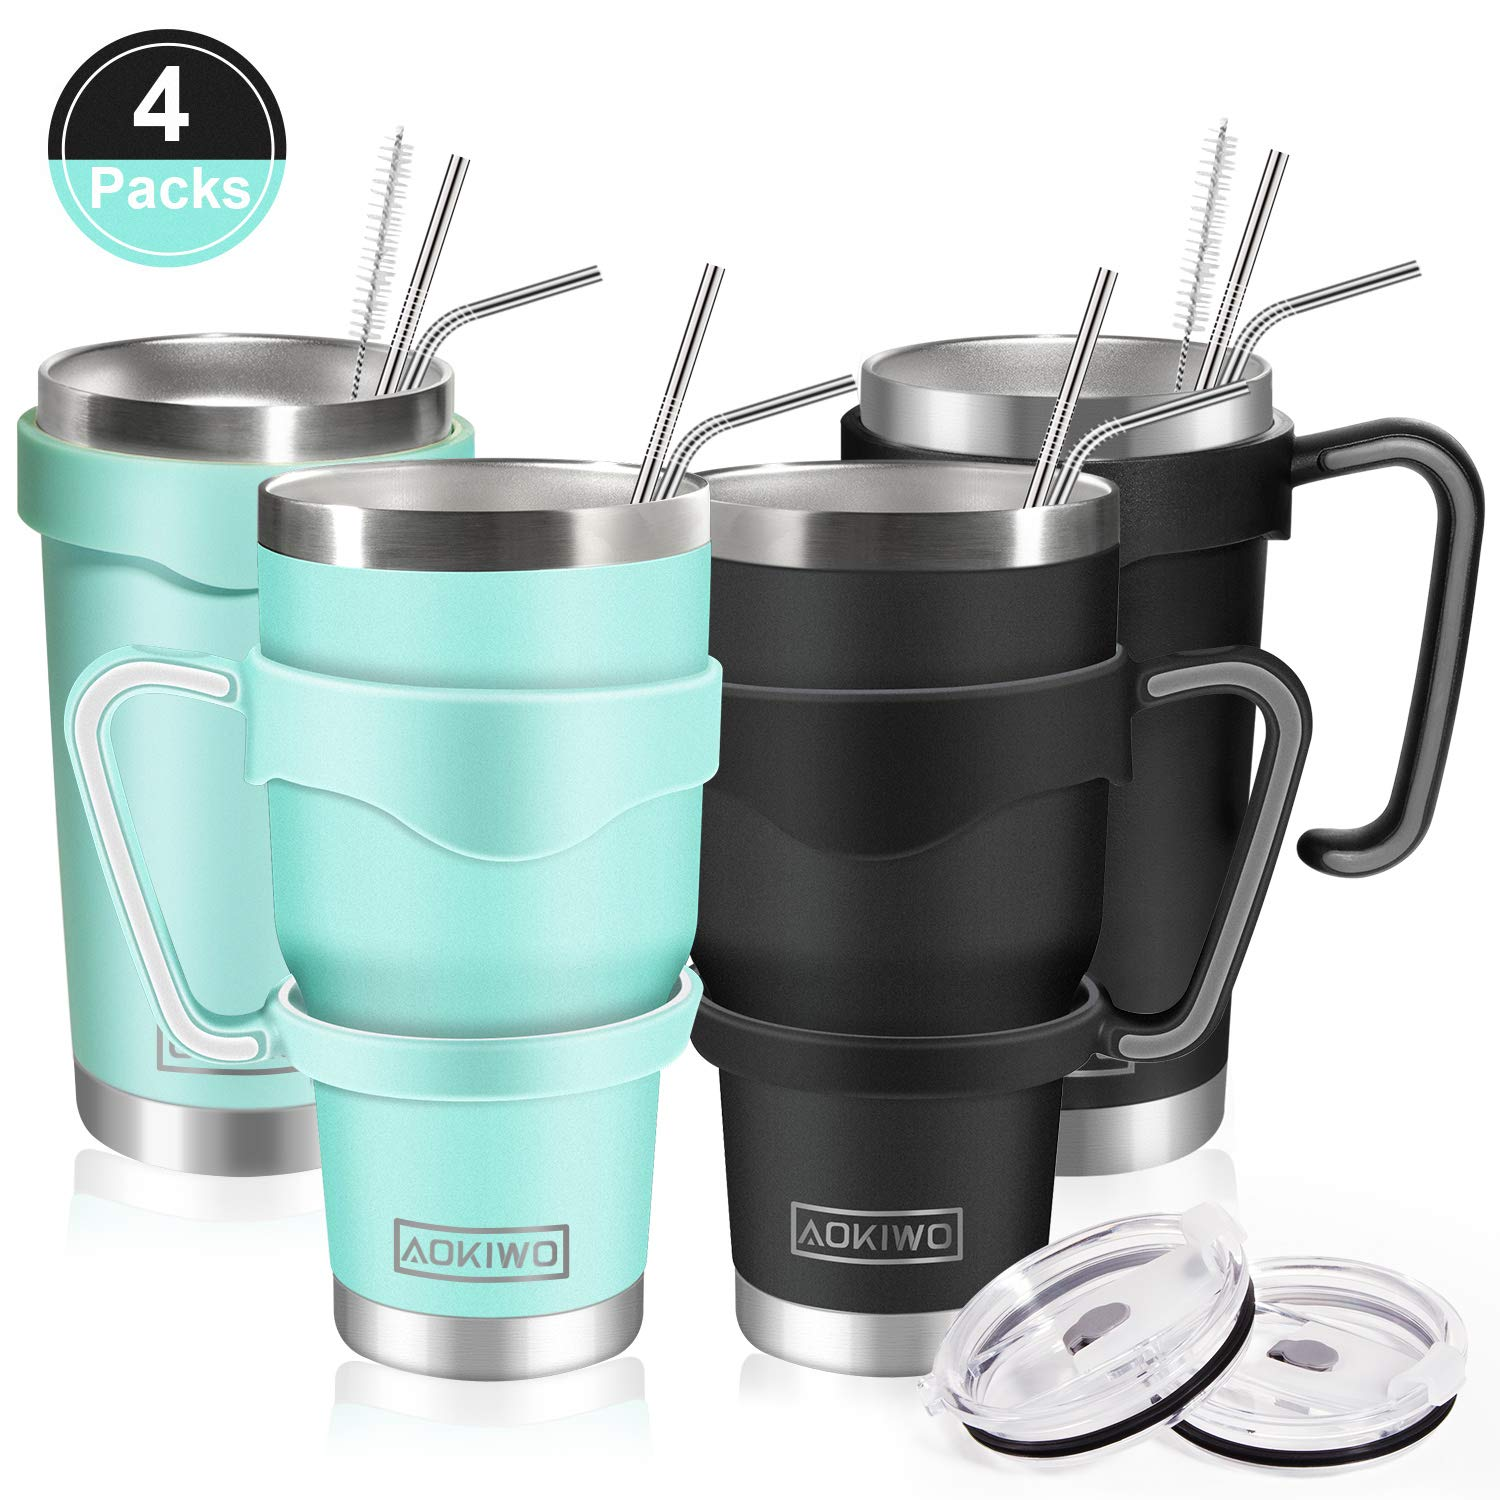 20oz and 30oz Tumbler, AOKIWO [4 Packs] Stainless Steel Insulated Tumblers Double Wall Vacuum Tumble Travel Mug with 4 Lids, 8 Straws, 2 Brush and 4 Handles